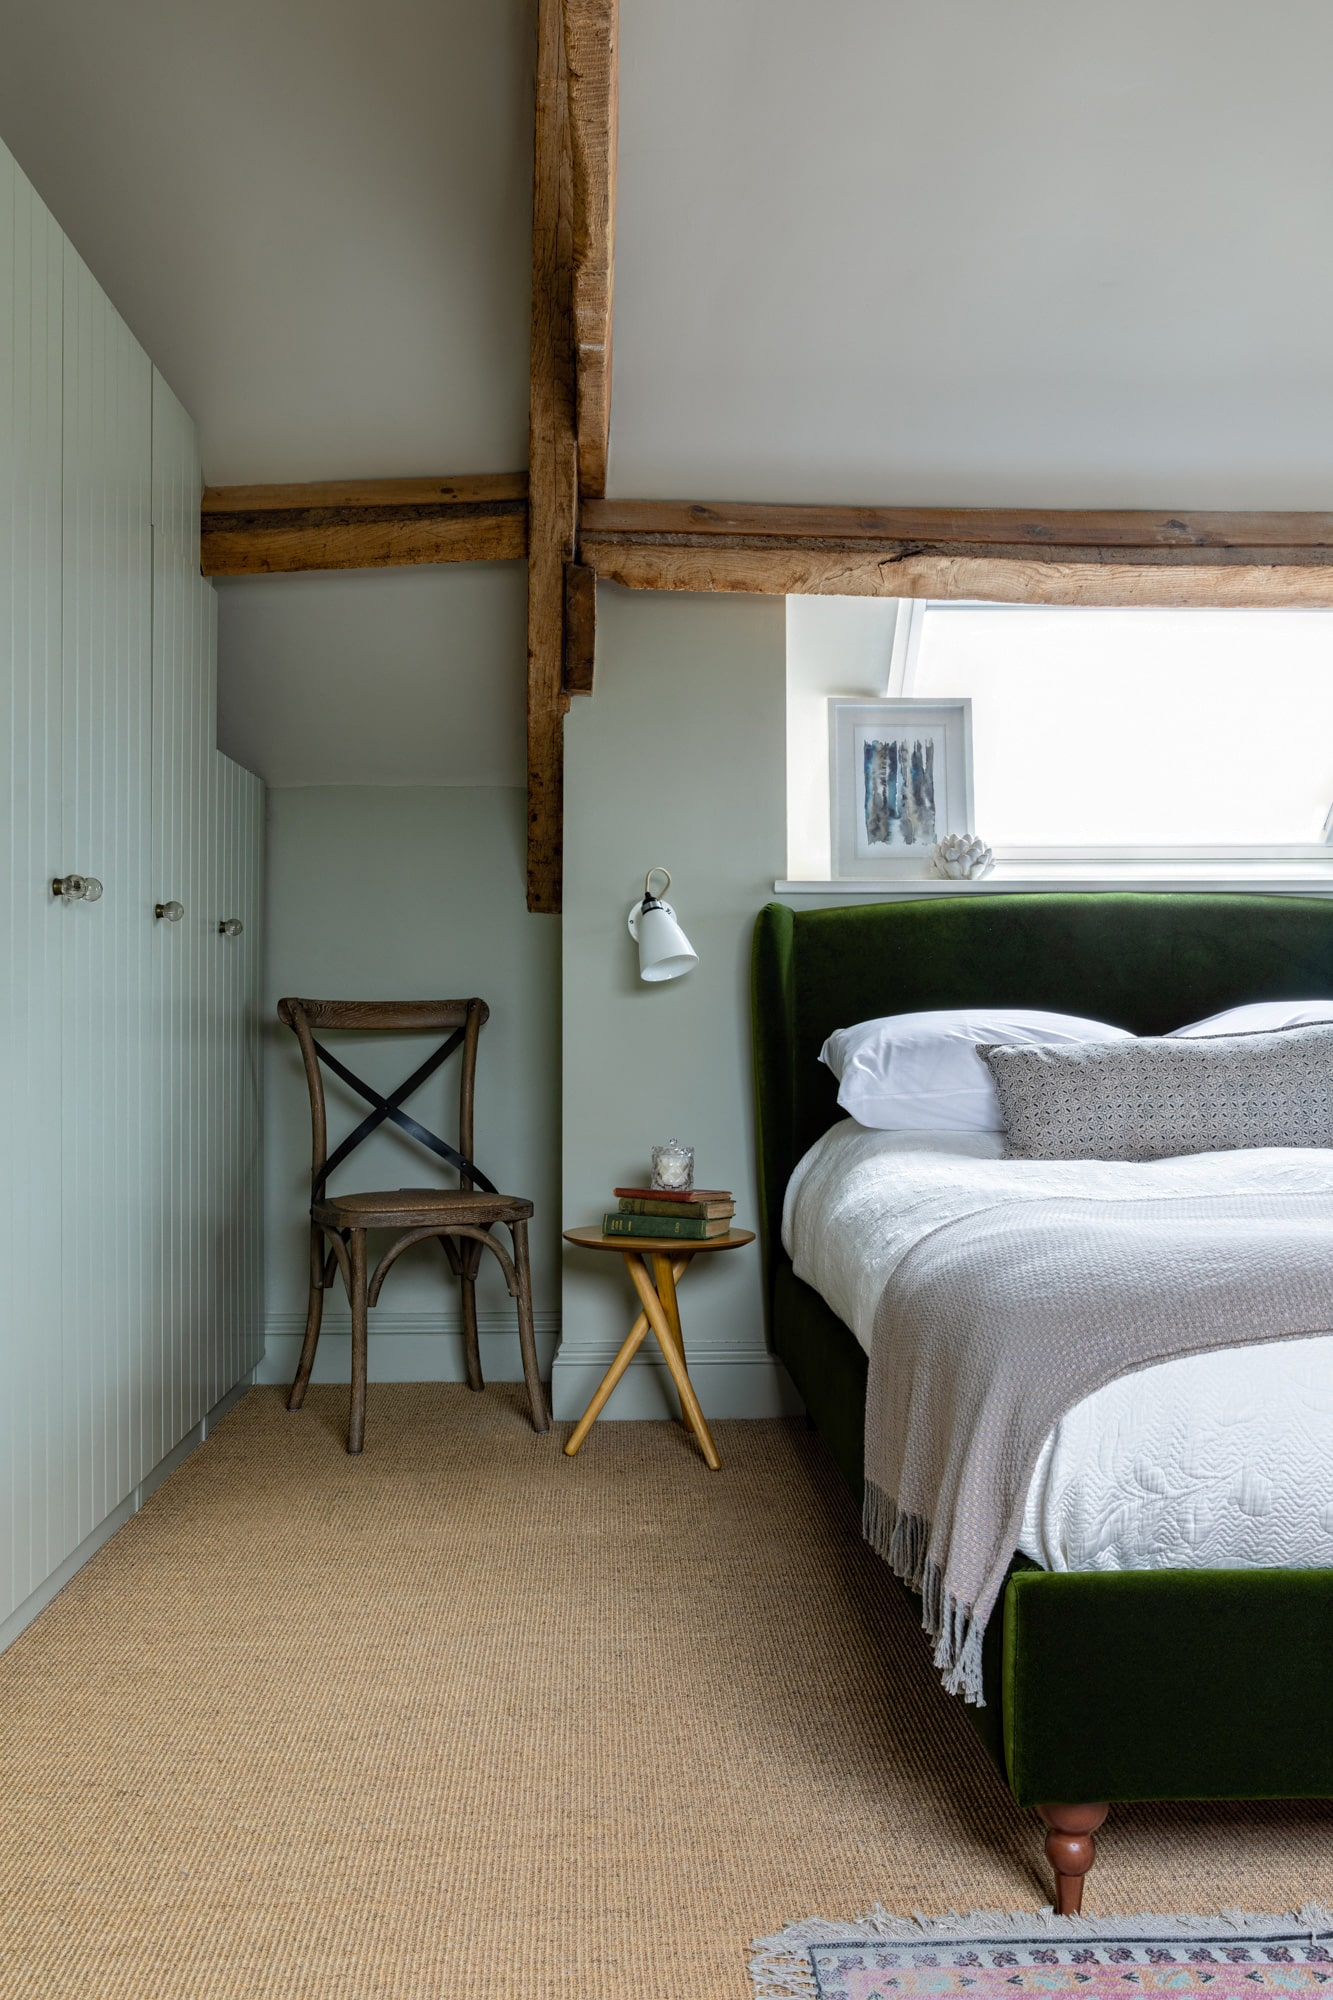 bedroom in a renovated barn; dark green velvet bed with white linen; bedside table; olive green walls and olive green built-in wardrobe